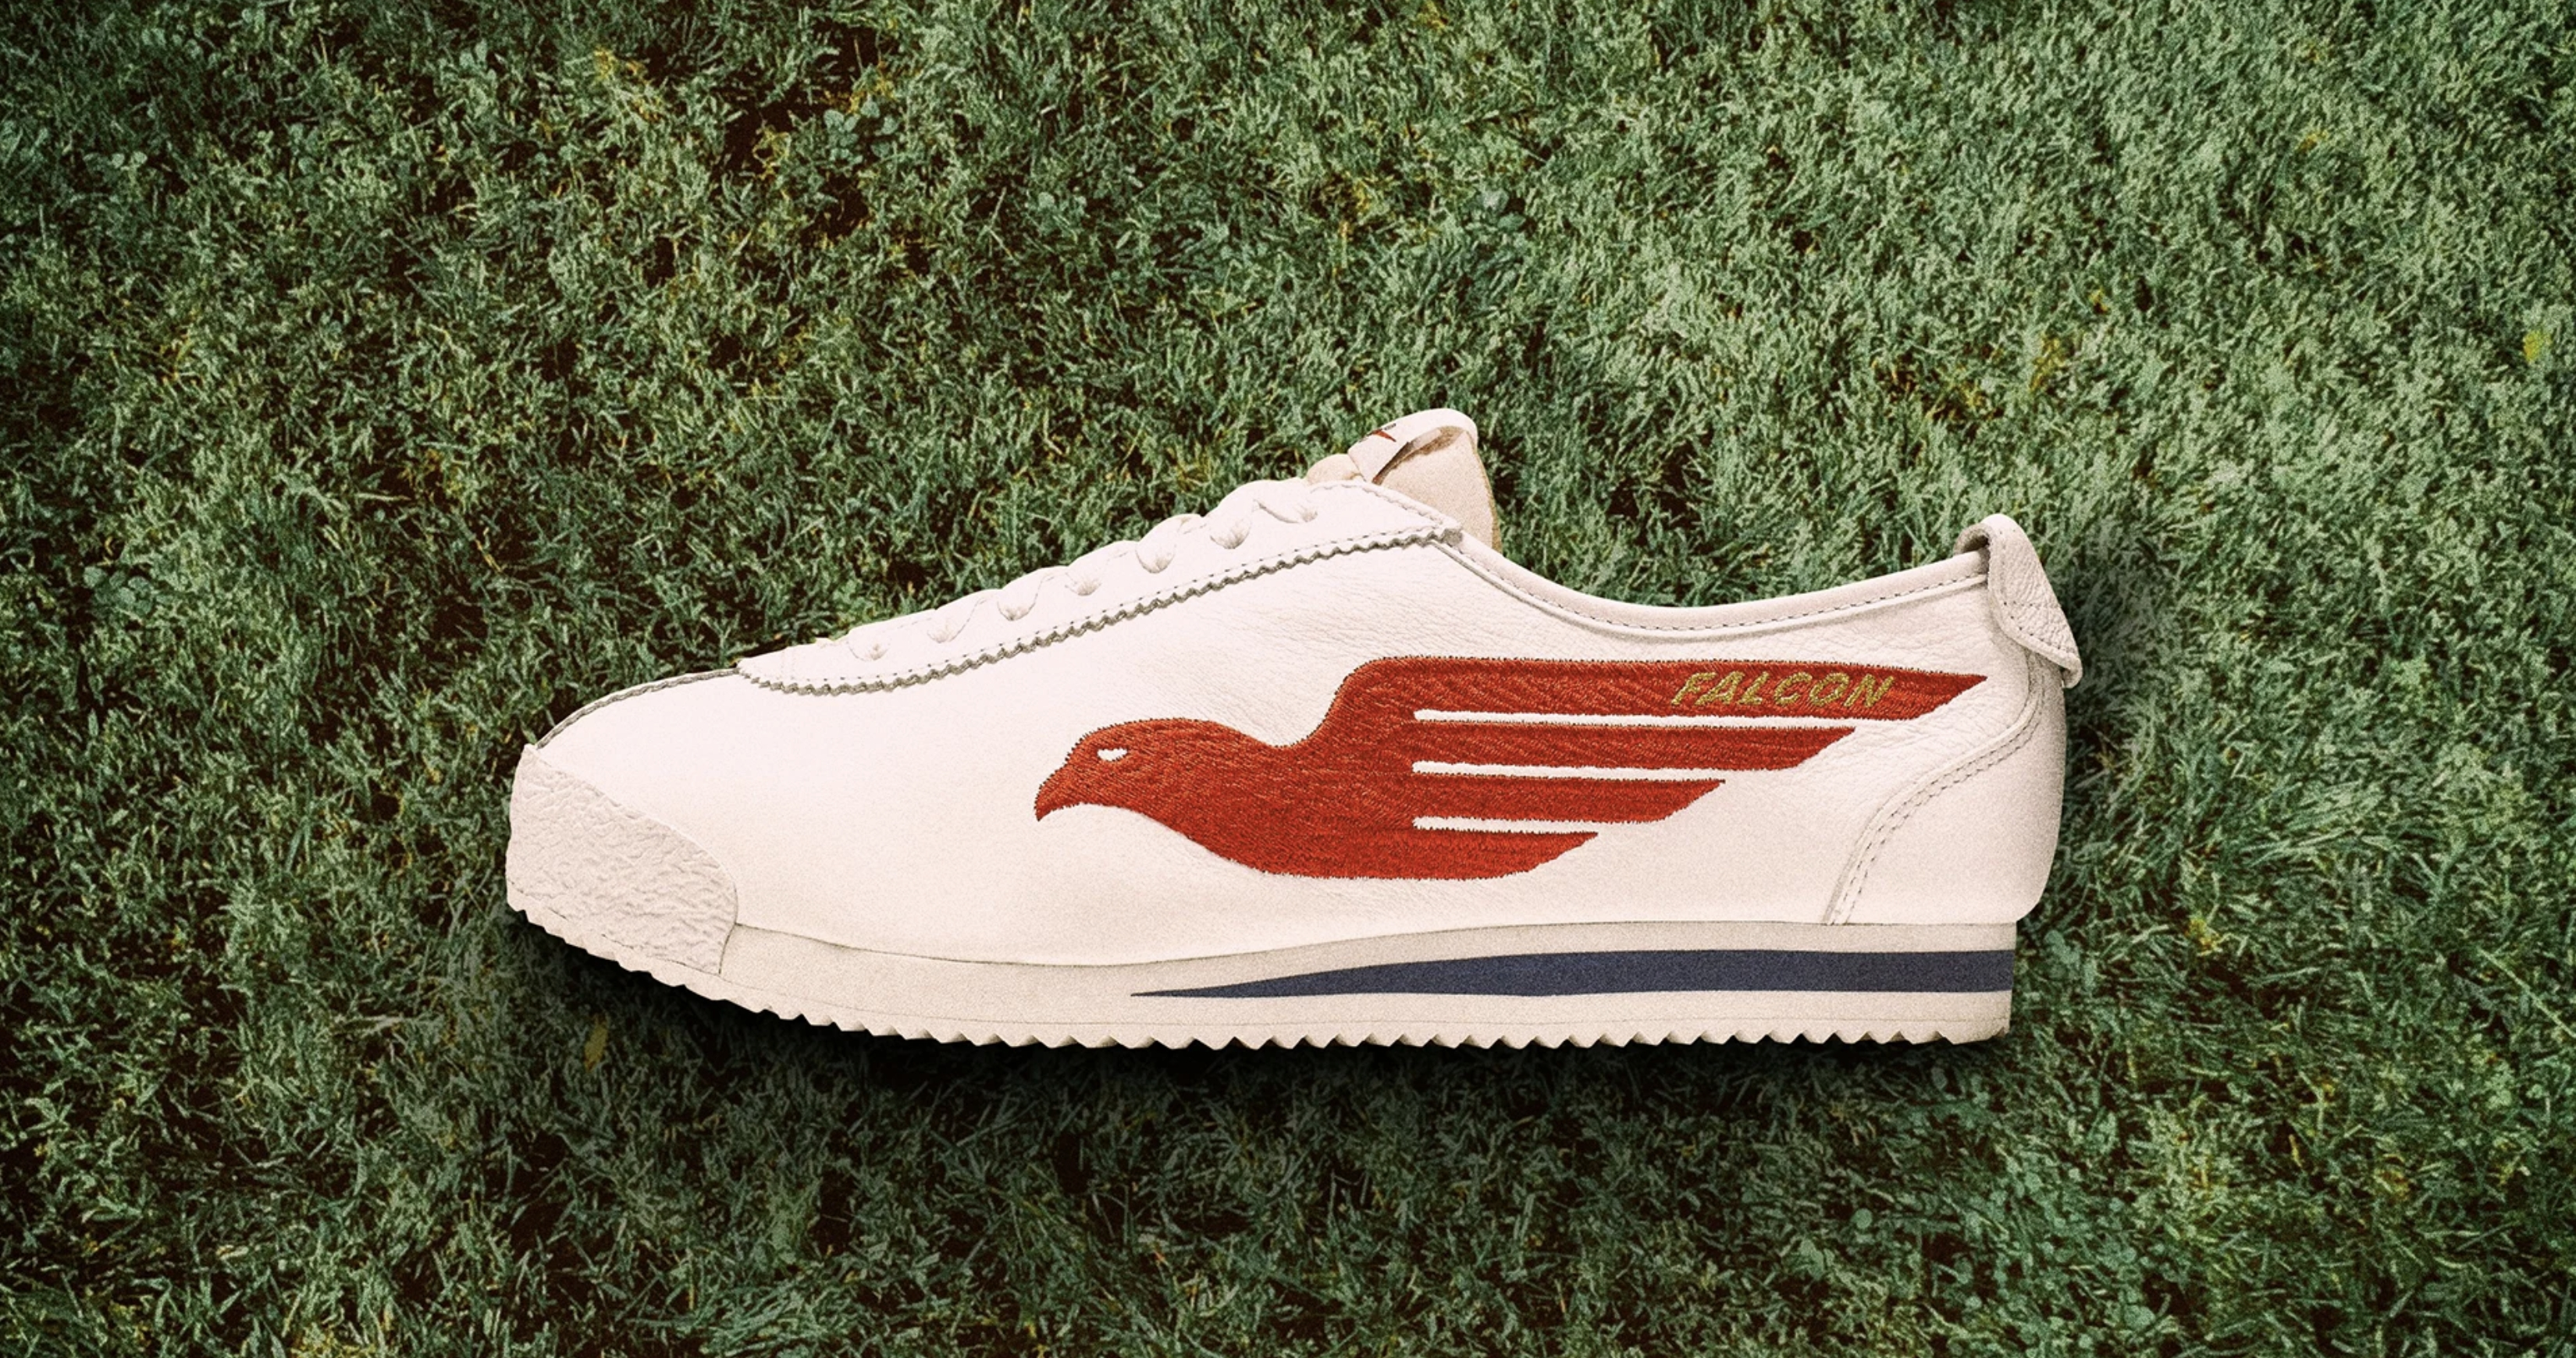 brand new 88c02 5ca8a Where To Buy The Nike Shoe Dog Cortez Collection And Other ...